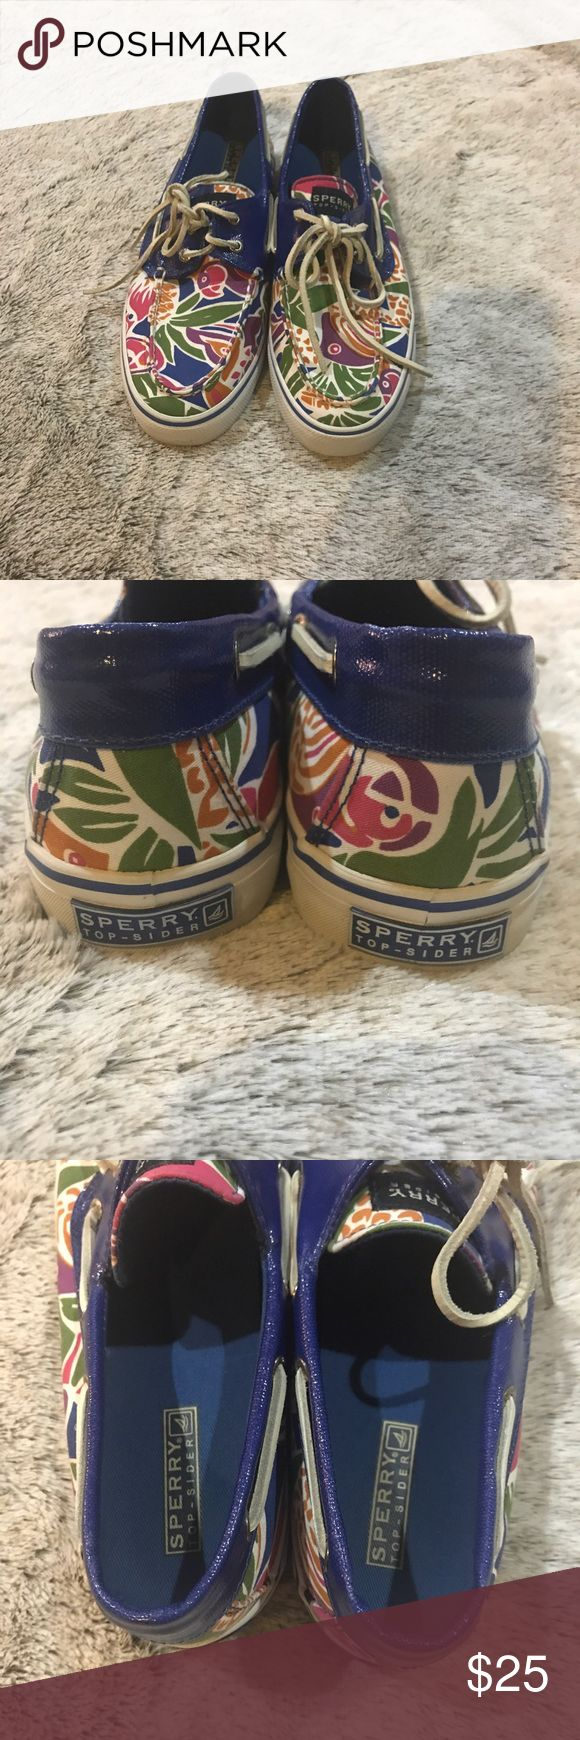 Brand New Sperry Boat Shoes Never worn Sperry Boat Shoes. Really fun pattern. Size 9. Sperry Top-Sider Shoes